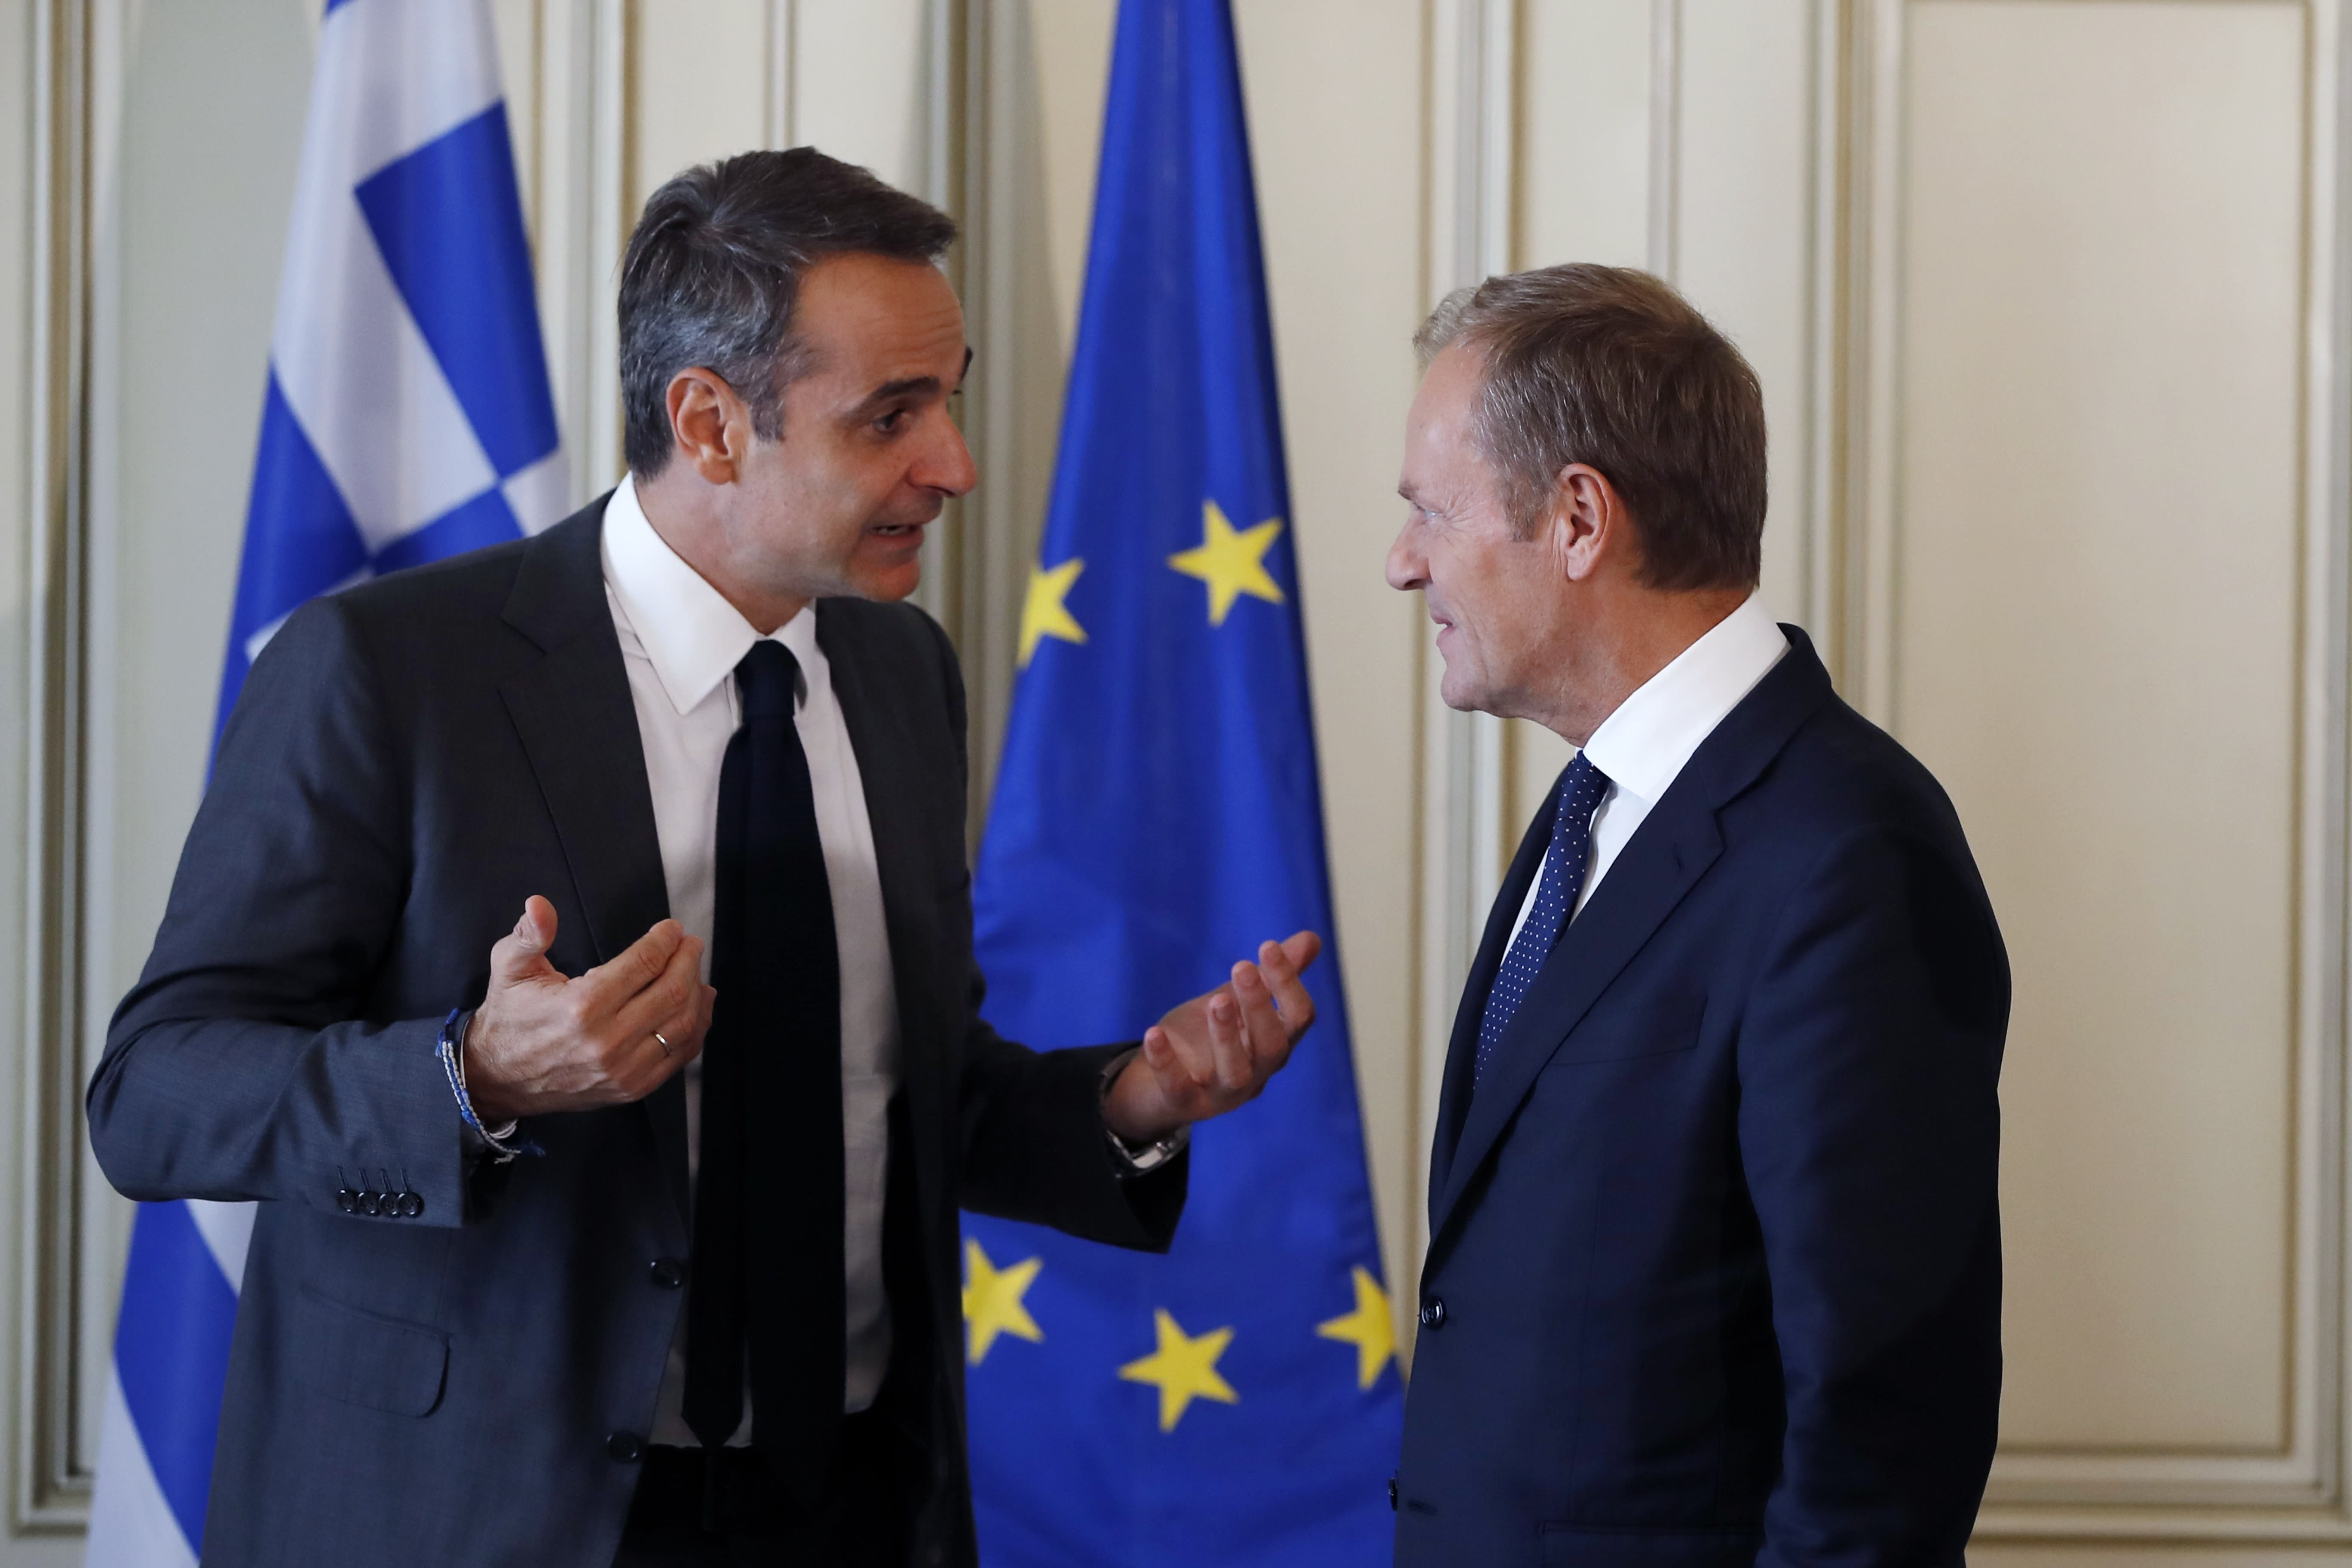 """Greece's Prime Minister Kyriakos Mitsotakis, left, speaks with the European Council President Donald Tusk during their meeting at Maximos Mansion in Athens, Wednesday, Oct. 9, 2019. EU leaders have demanded more """"realism"""" from Britain in response to a Brexit plan proposed by British Prime Minister Boris Johnson. (AP Photo/Thanassis Stavrakis)"""